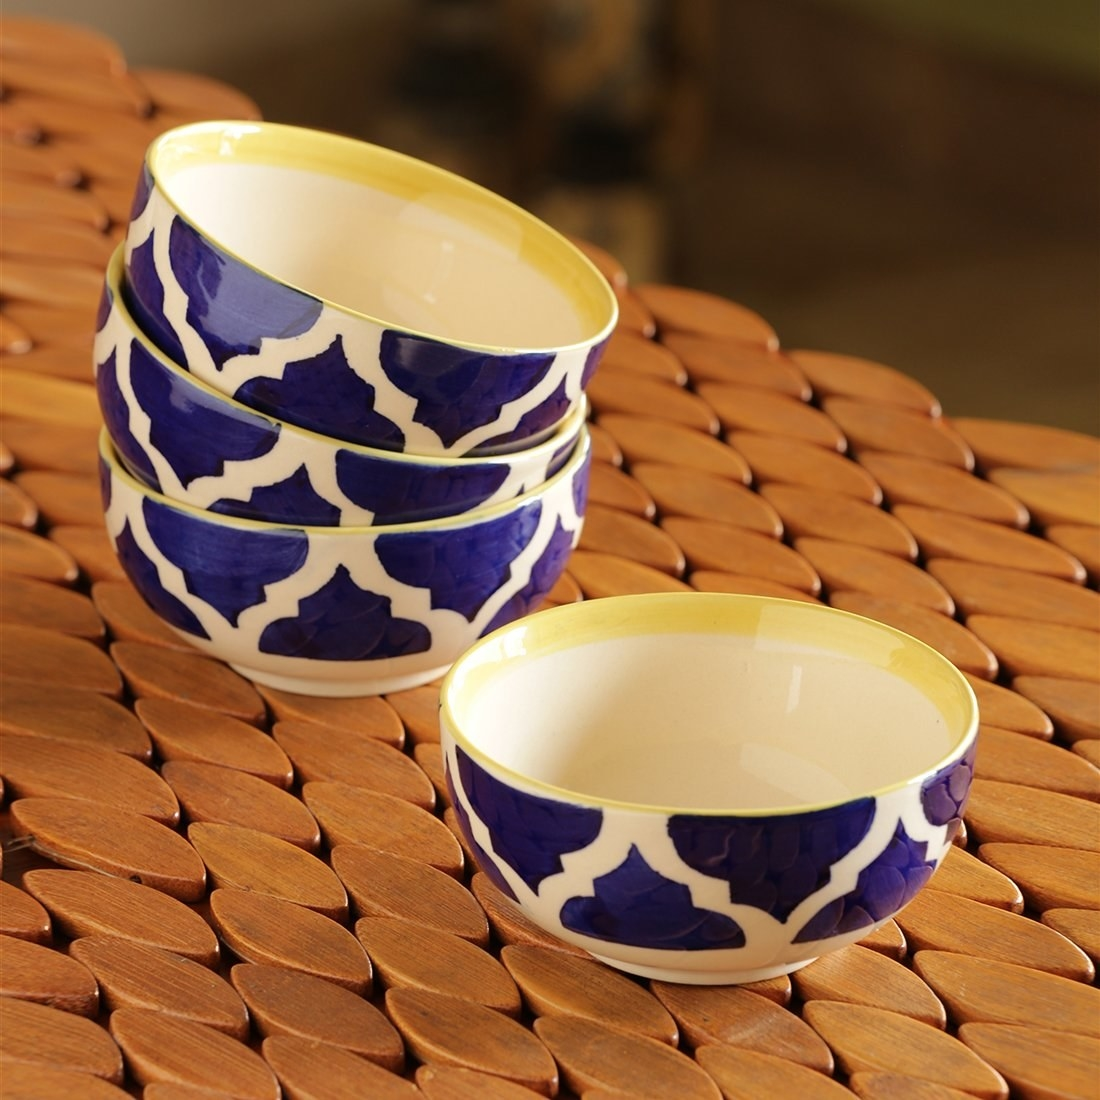 A set of blue and white bowls on a table